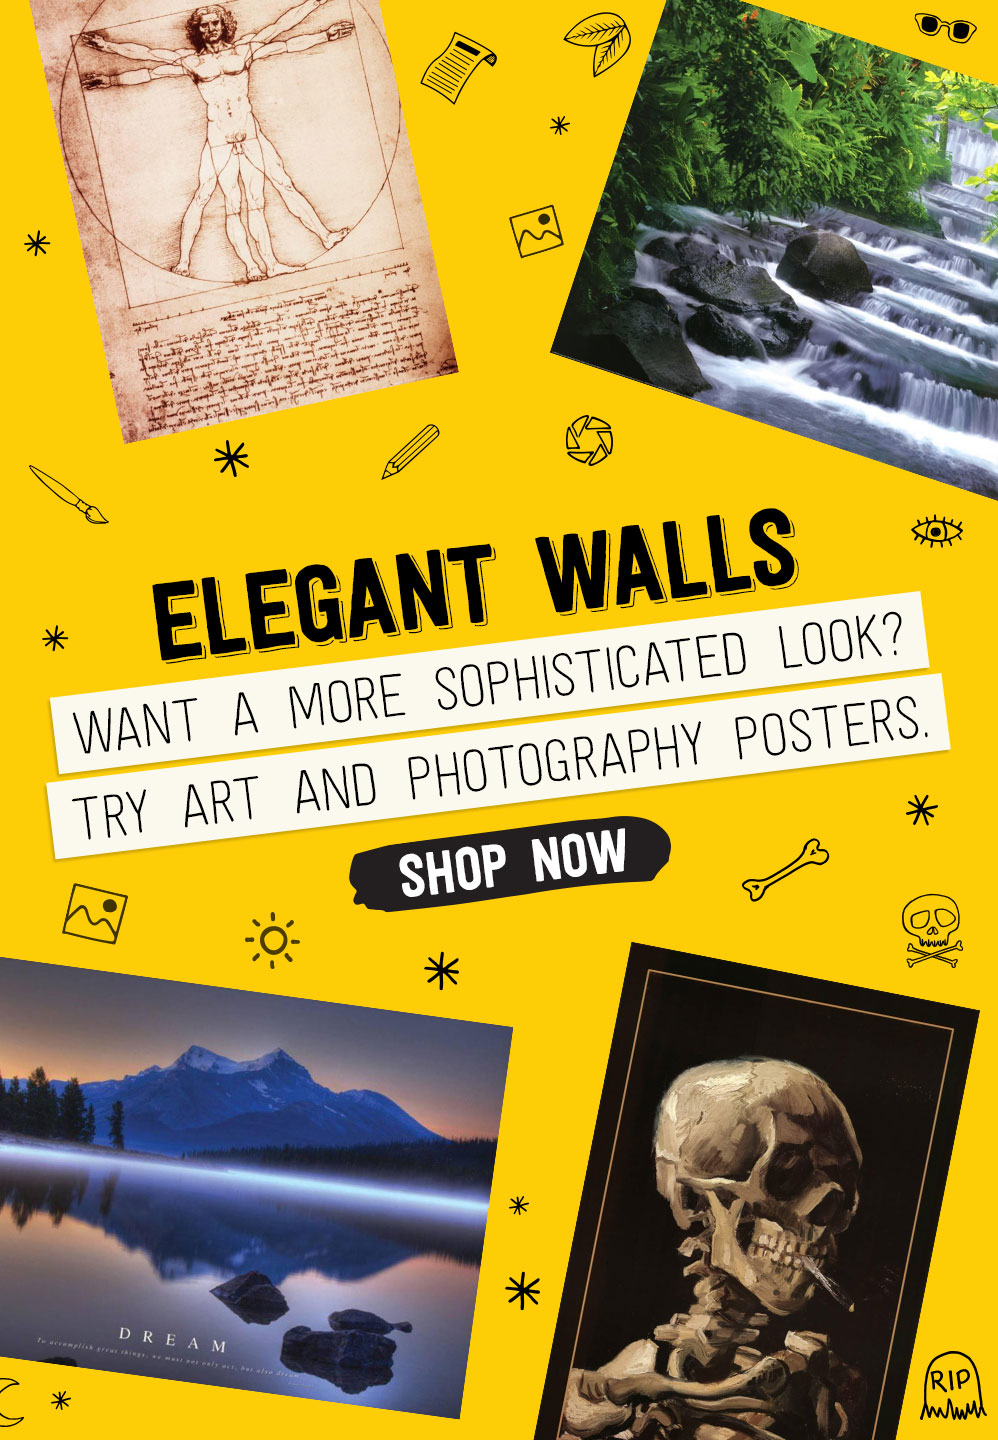 ELEGANT WALLS. Want a more sophisticated look? Try art and photography posters.